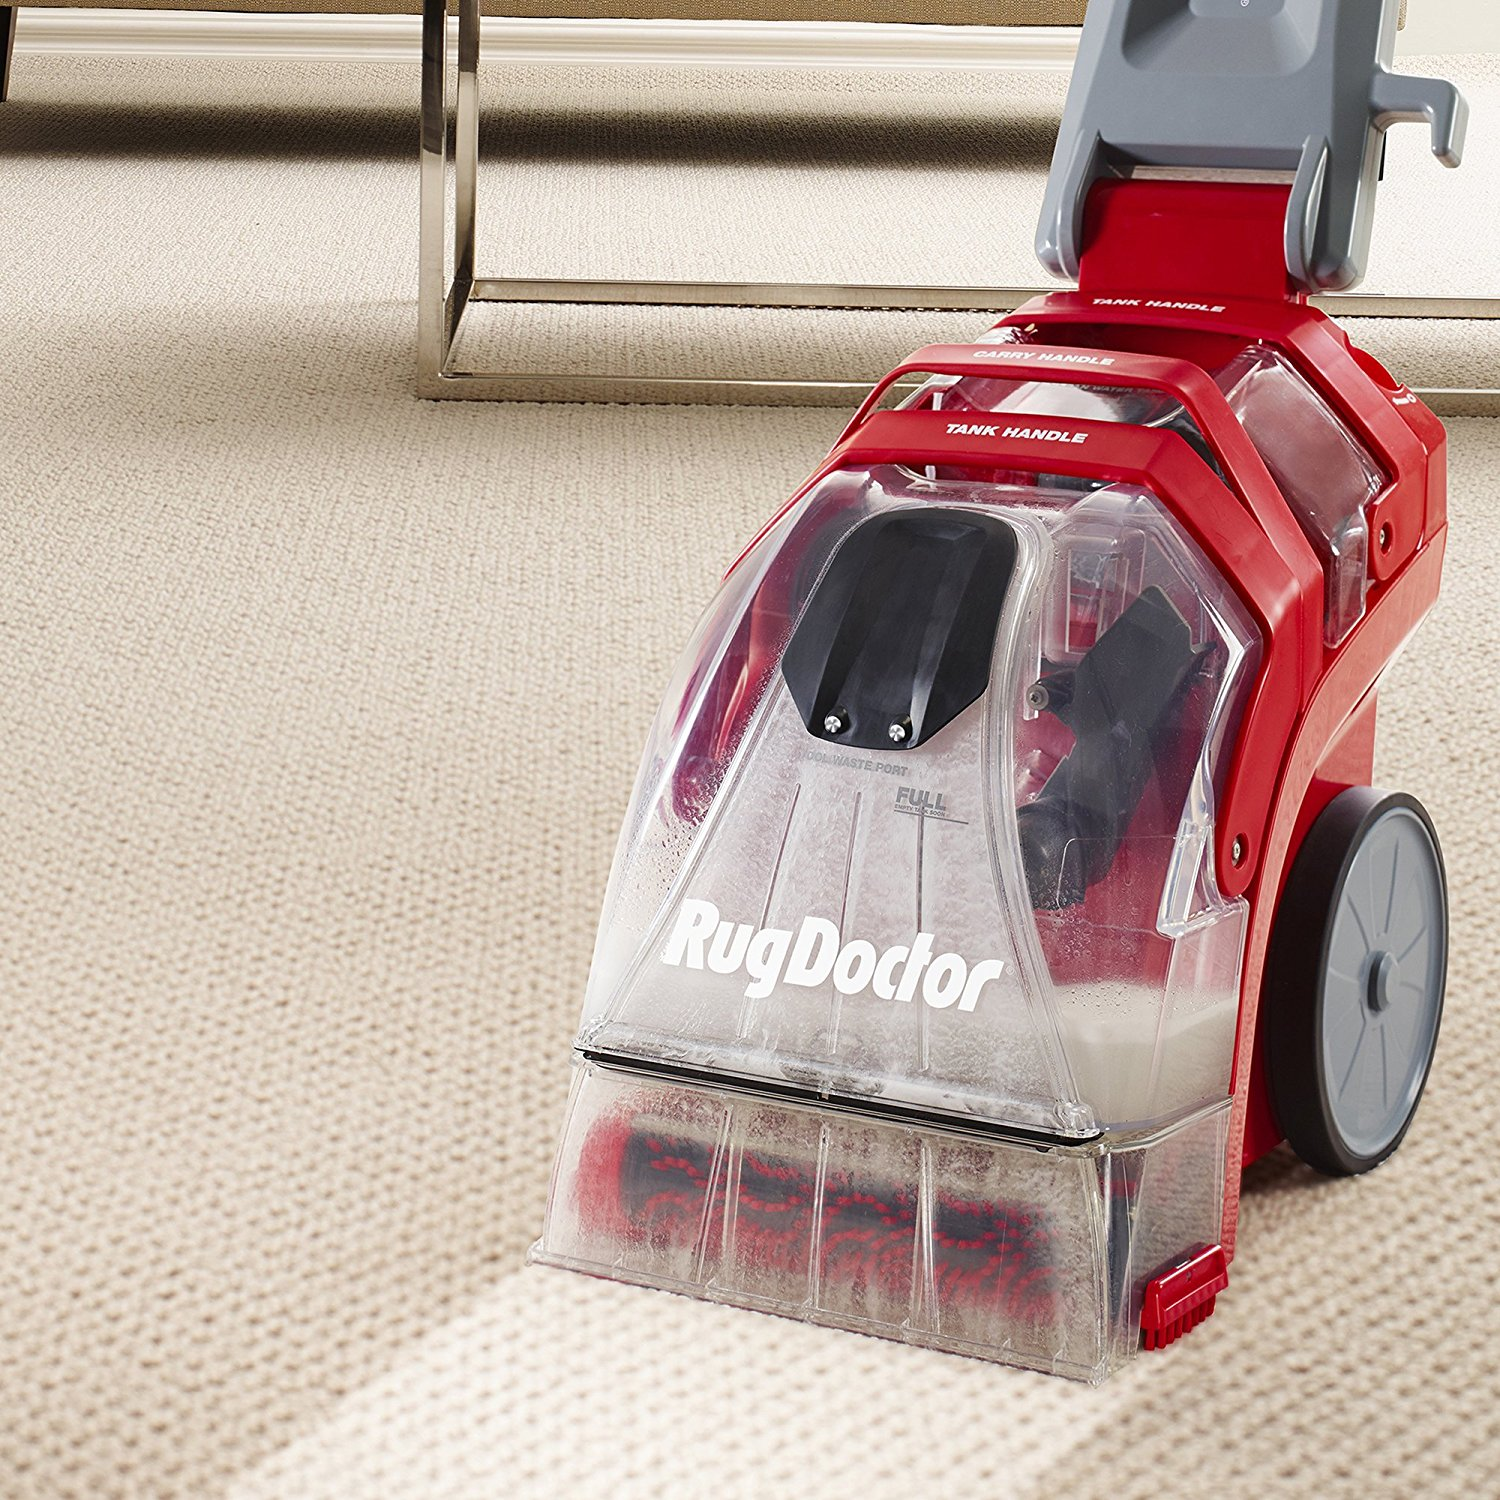 The 10 Best Carpet Cleaners for Pets in